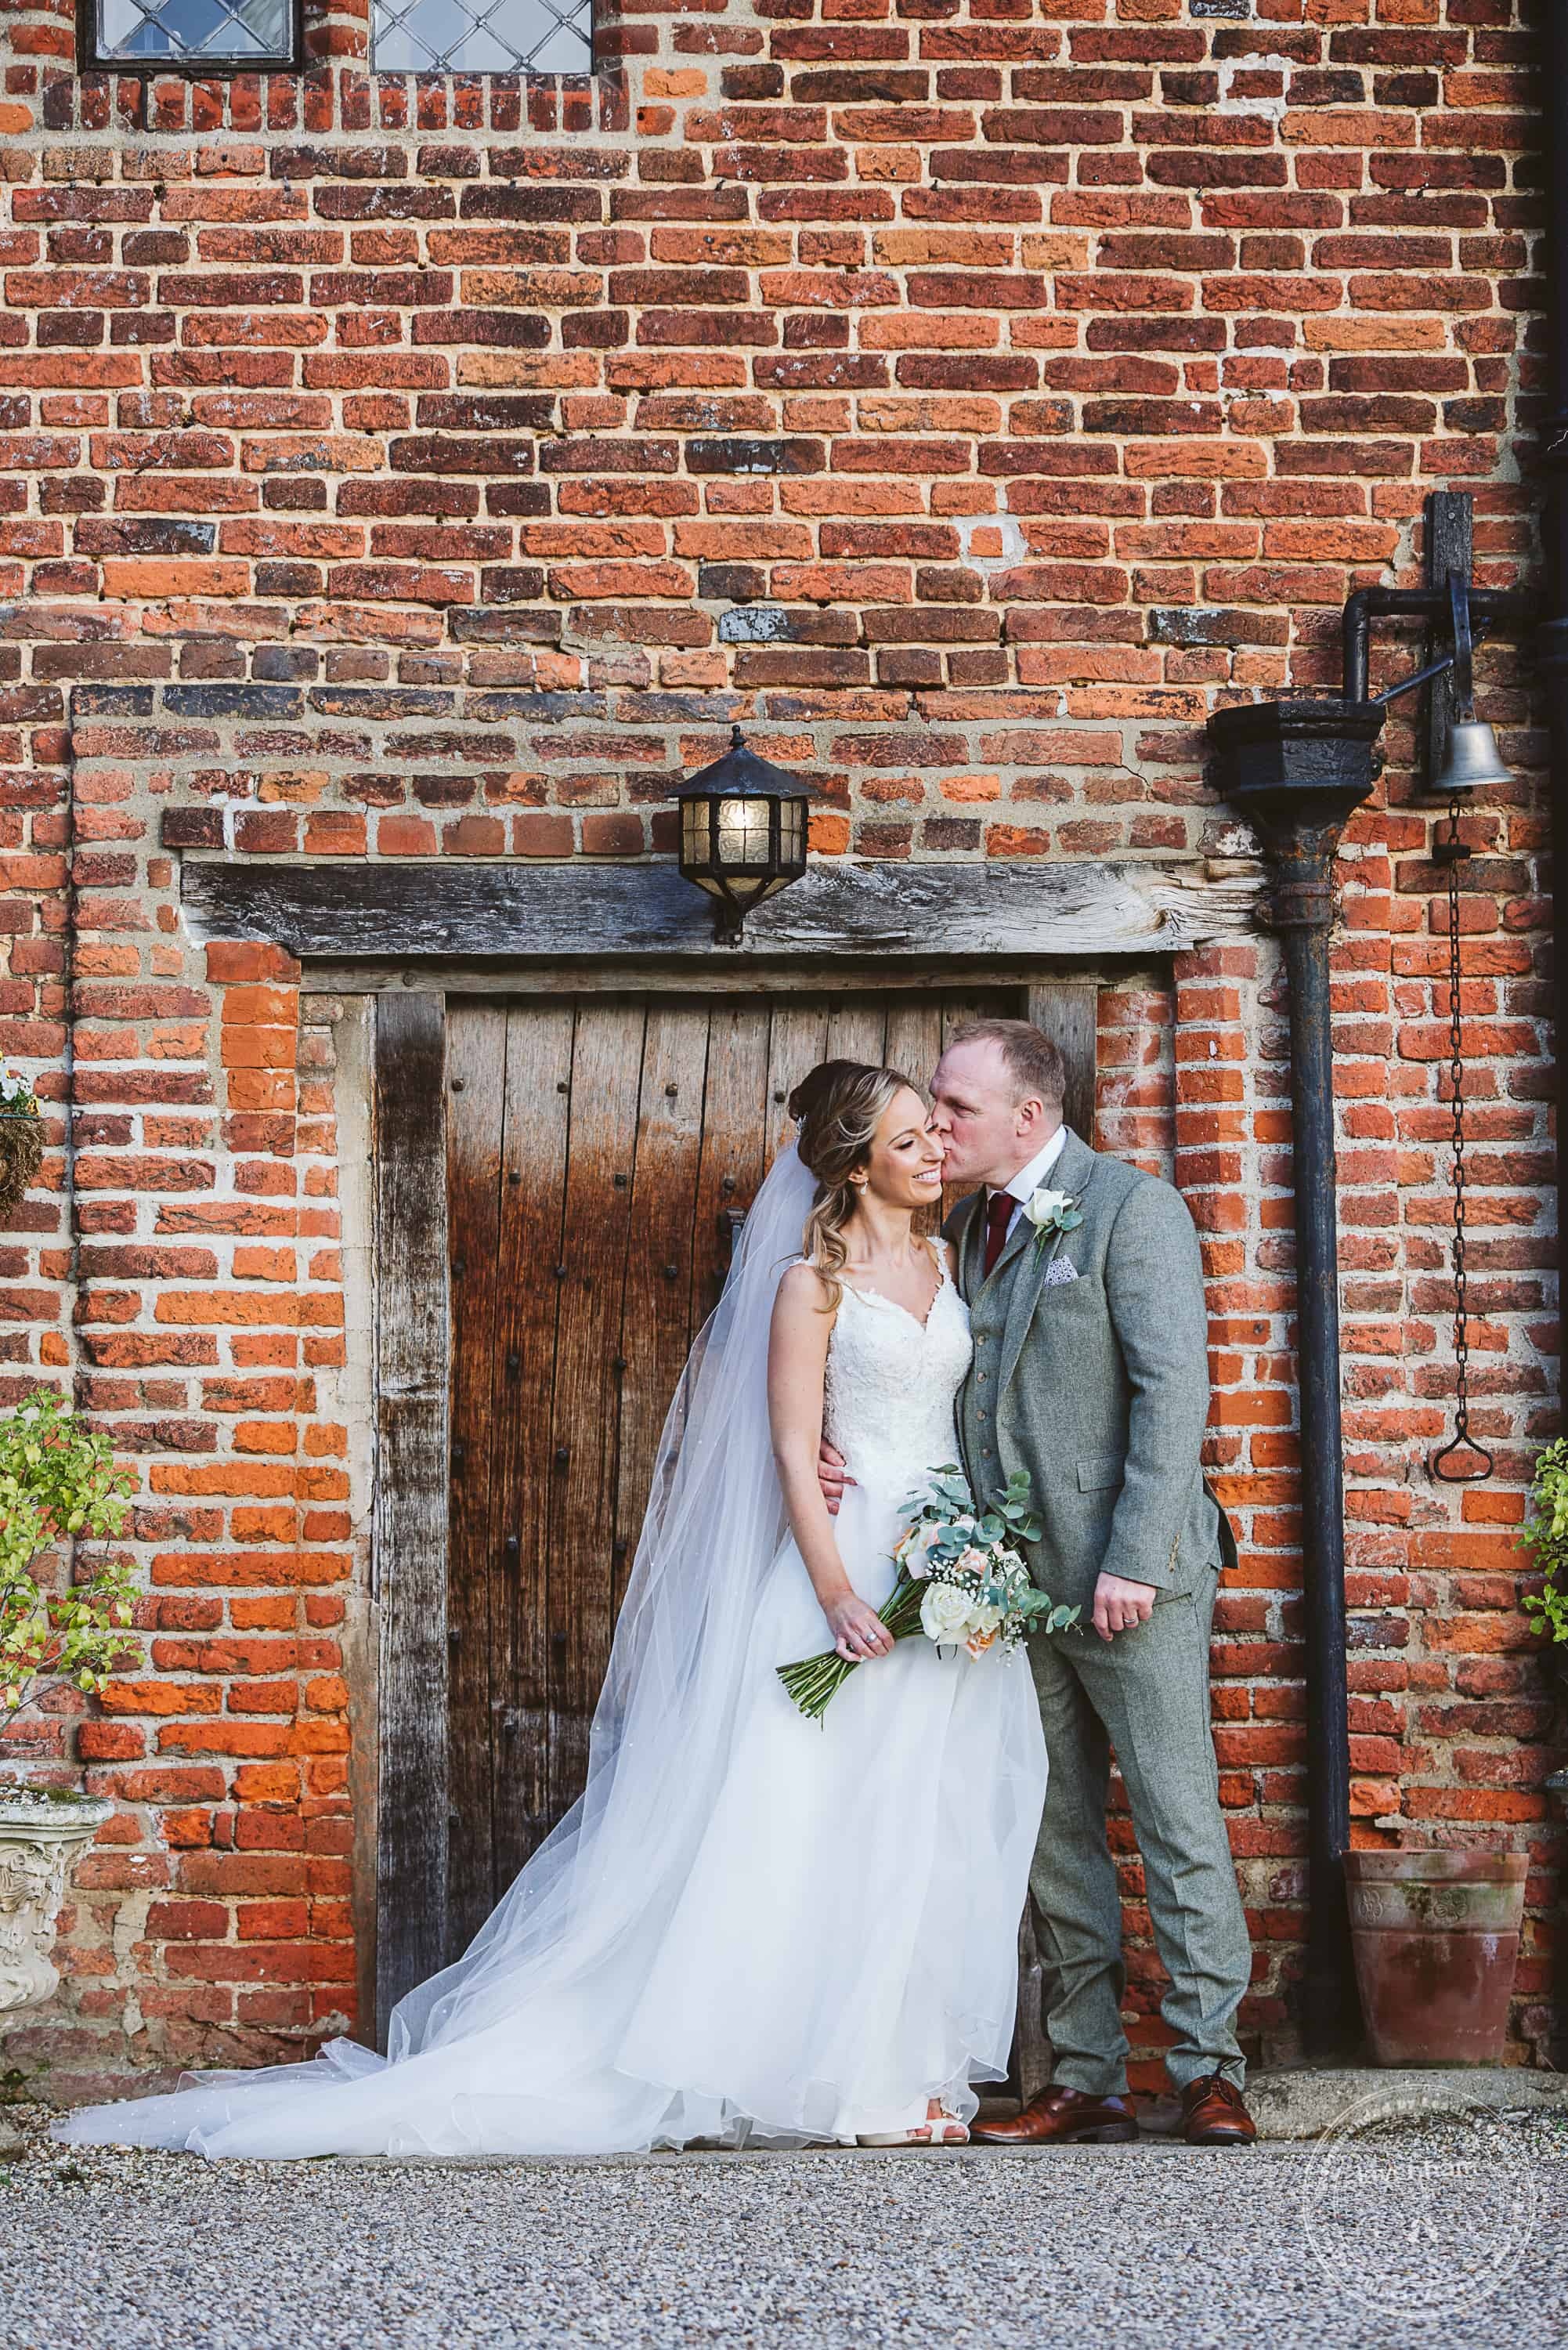 010220 Leez Priory Wedding Photographer 116